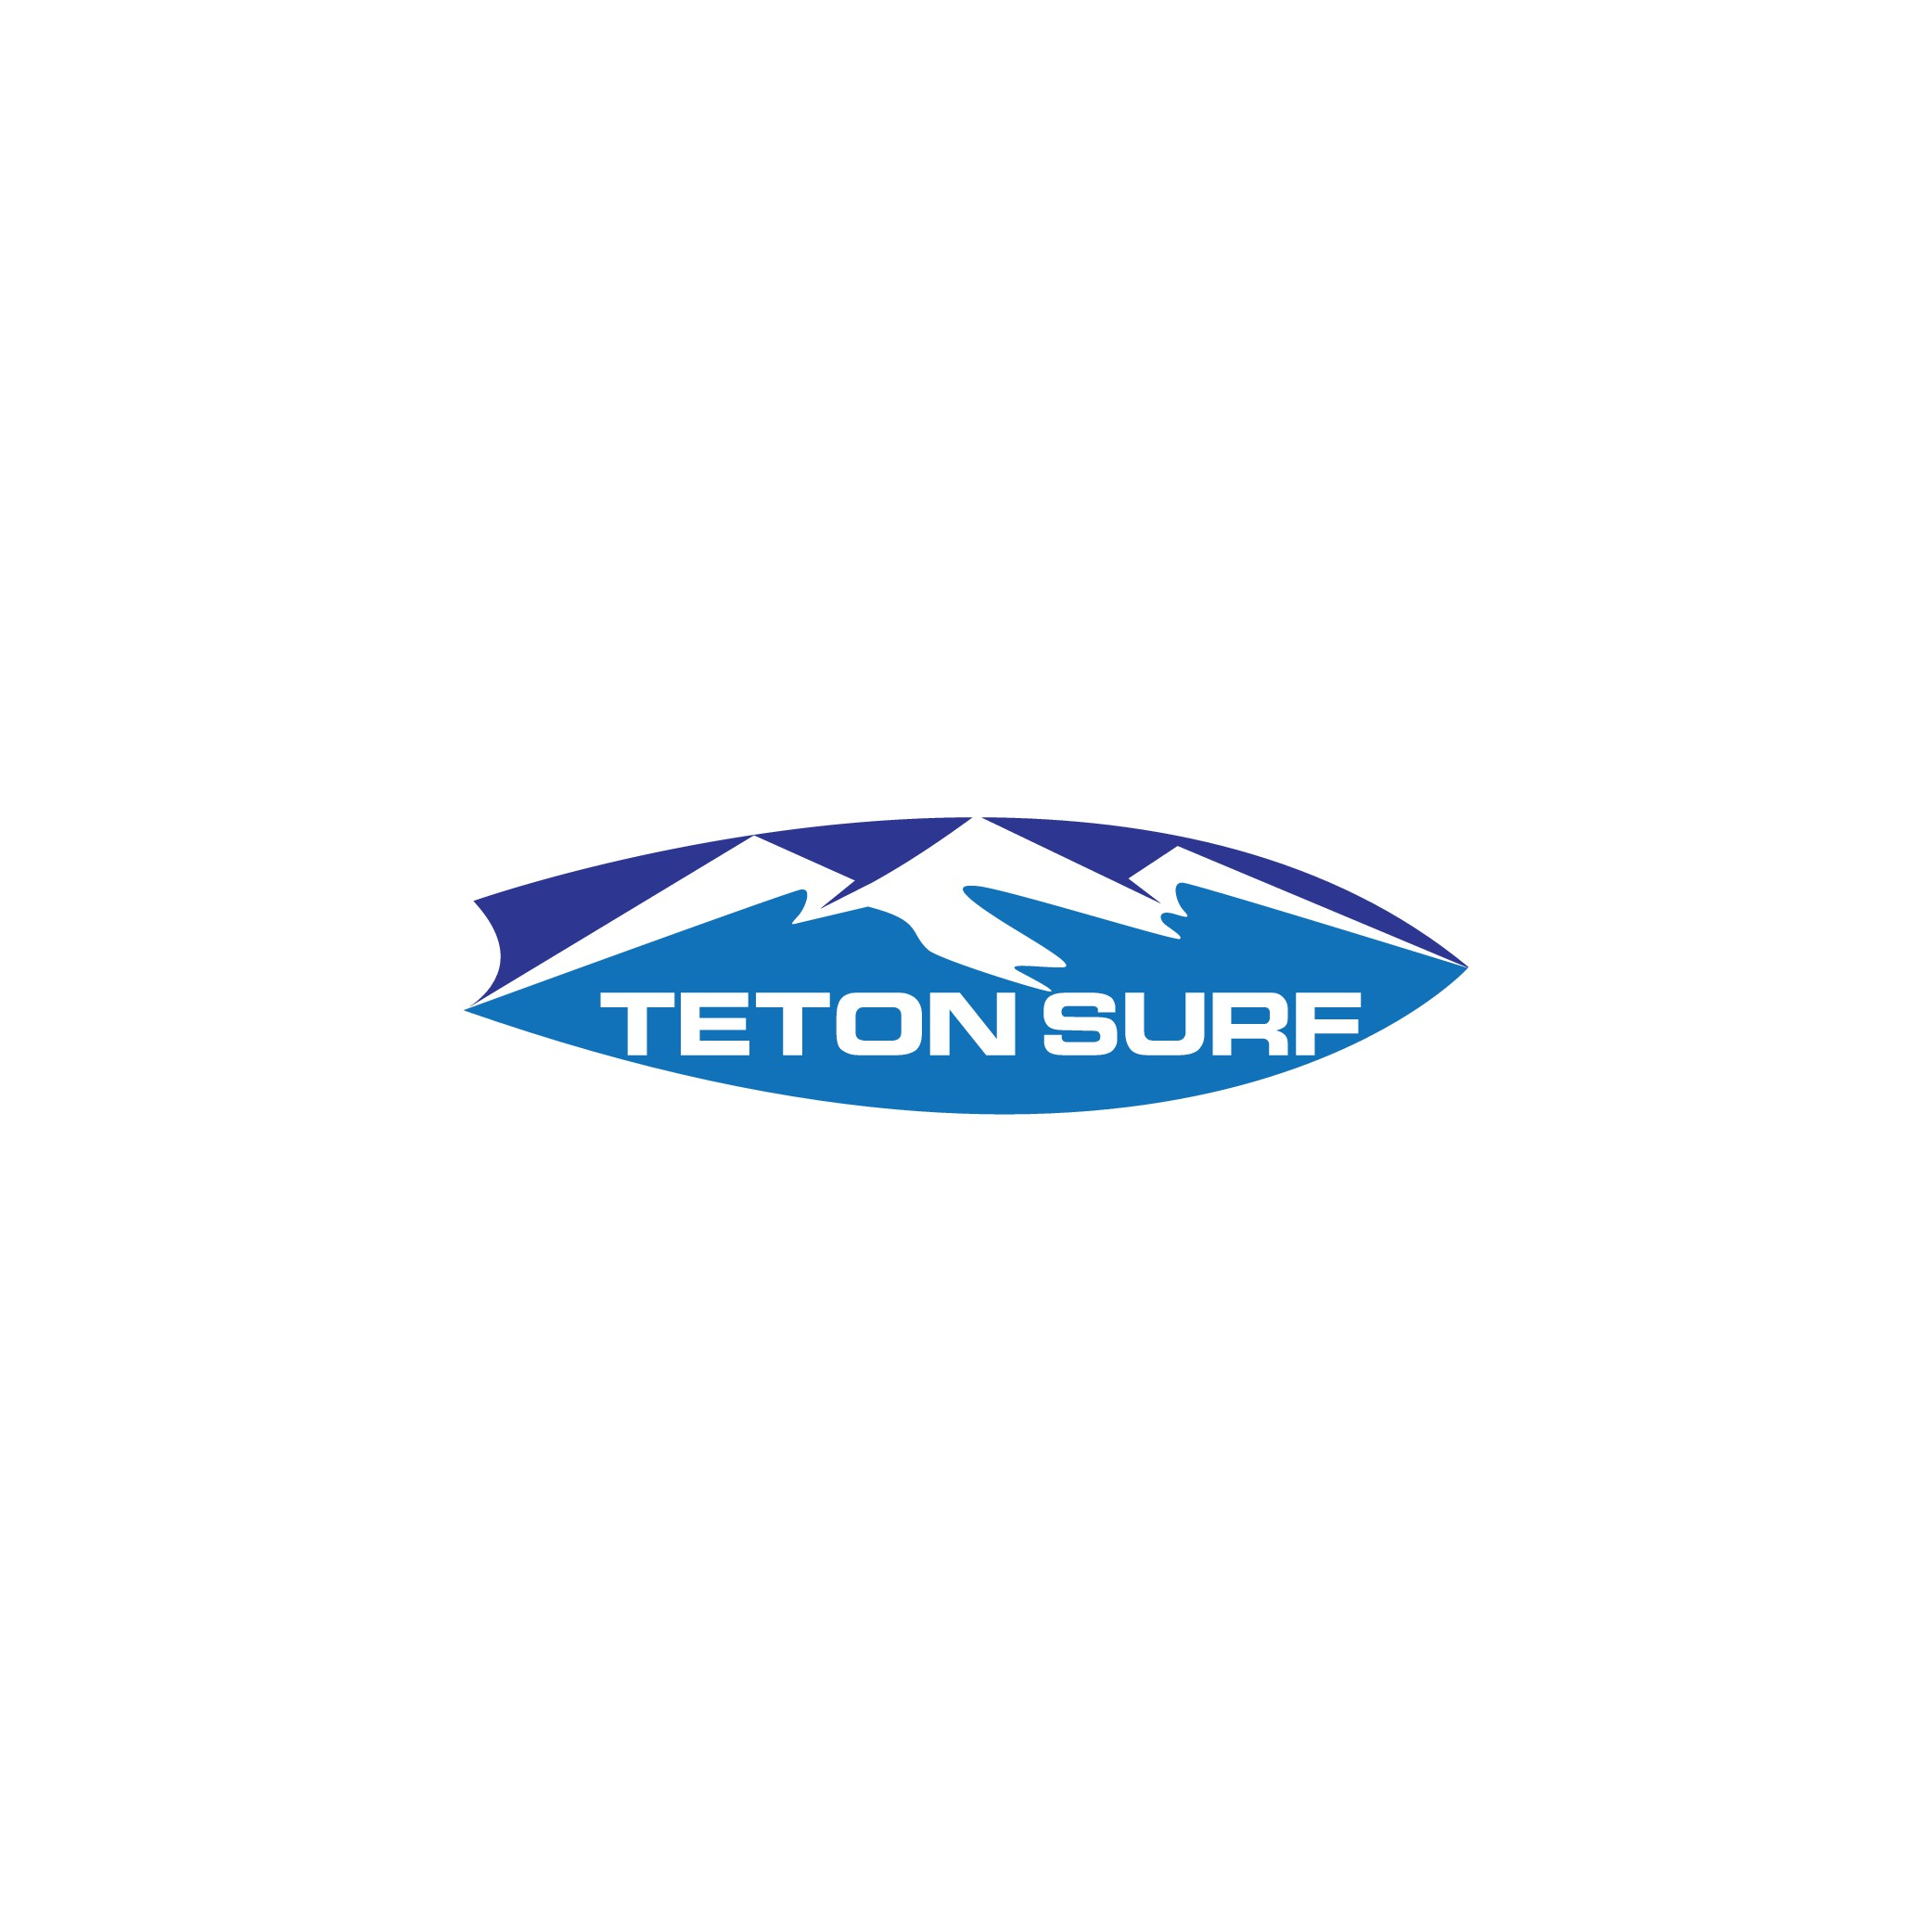 Teton Surf is looking for a new logo and we need your help!